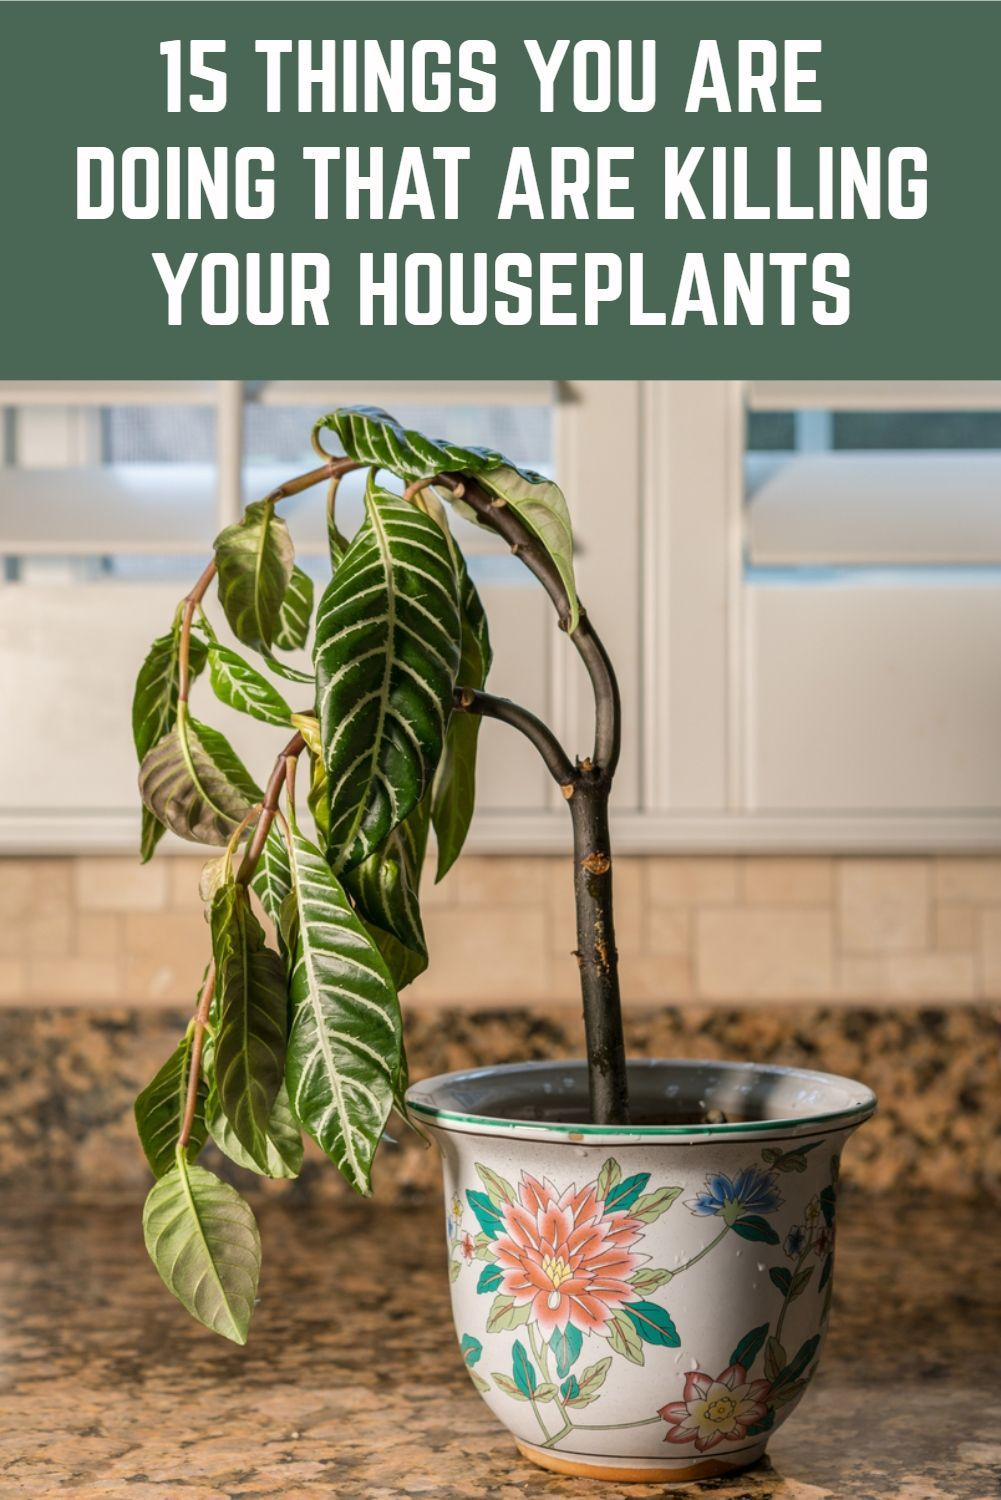 15 Things You Are Doing That Are Killing Your Houseplants